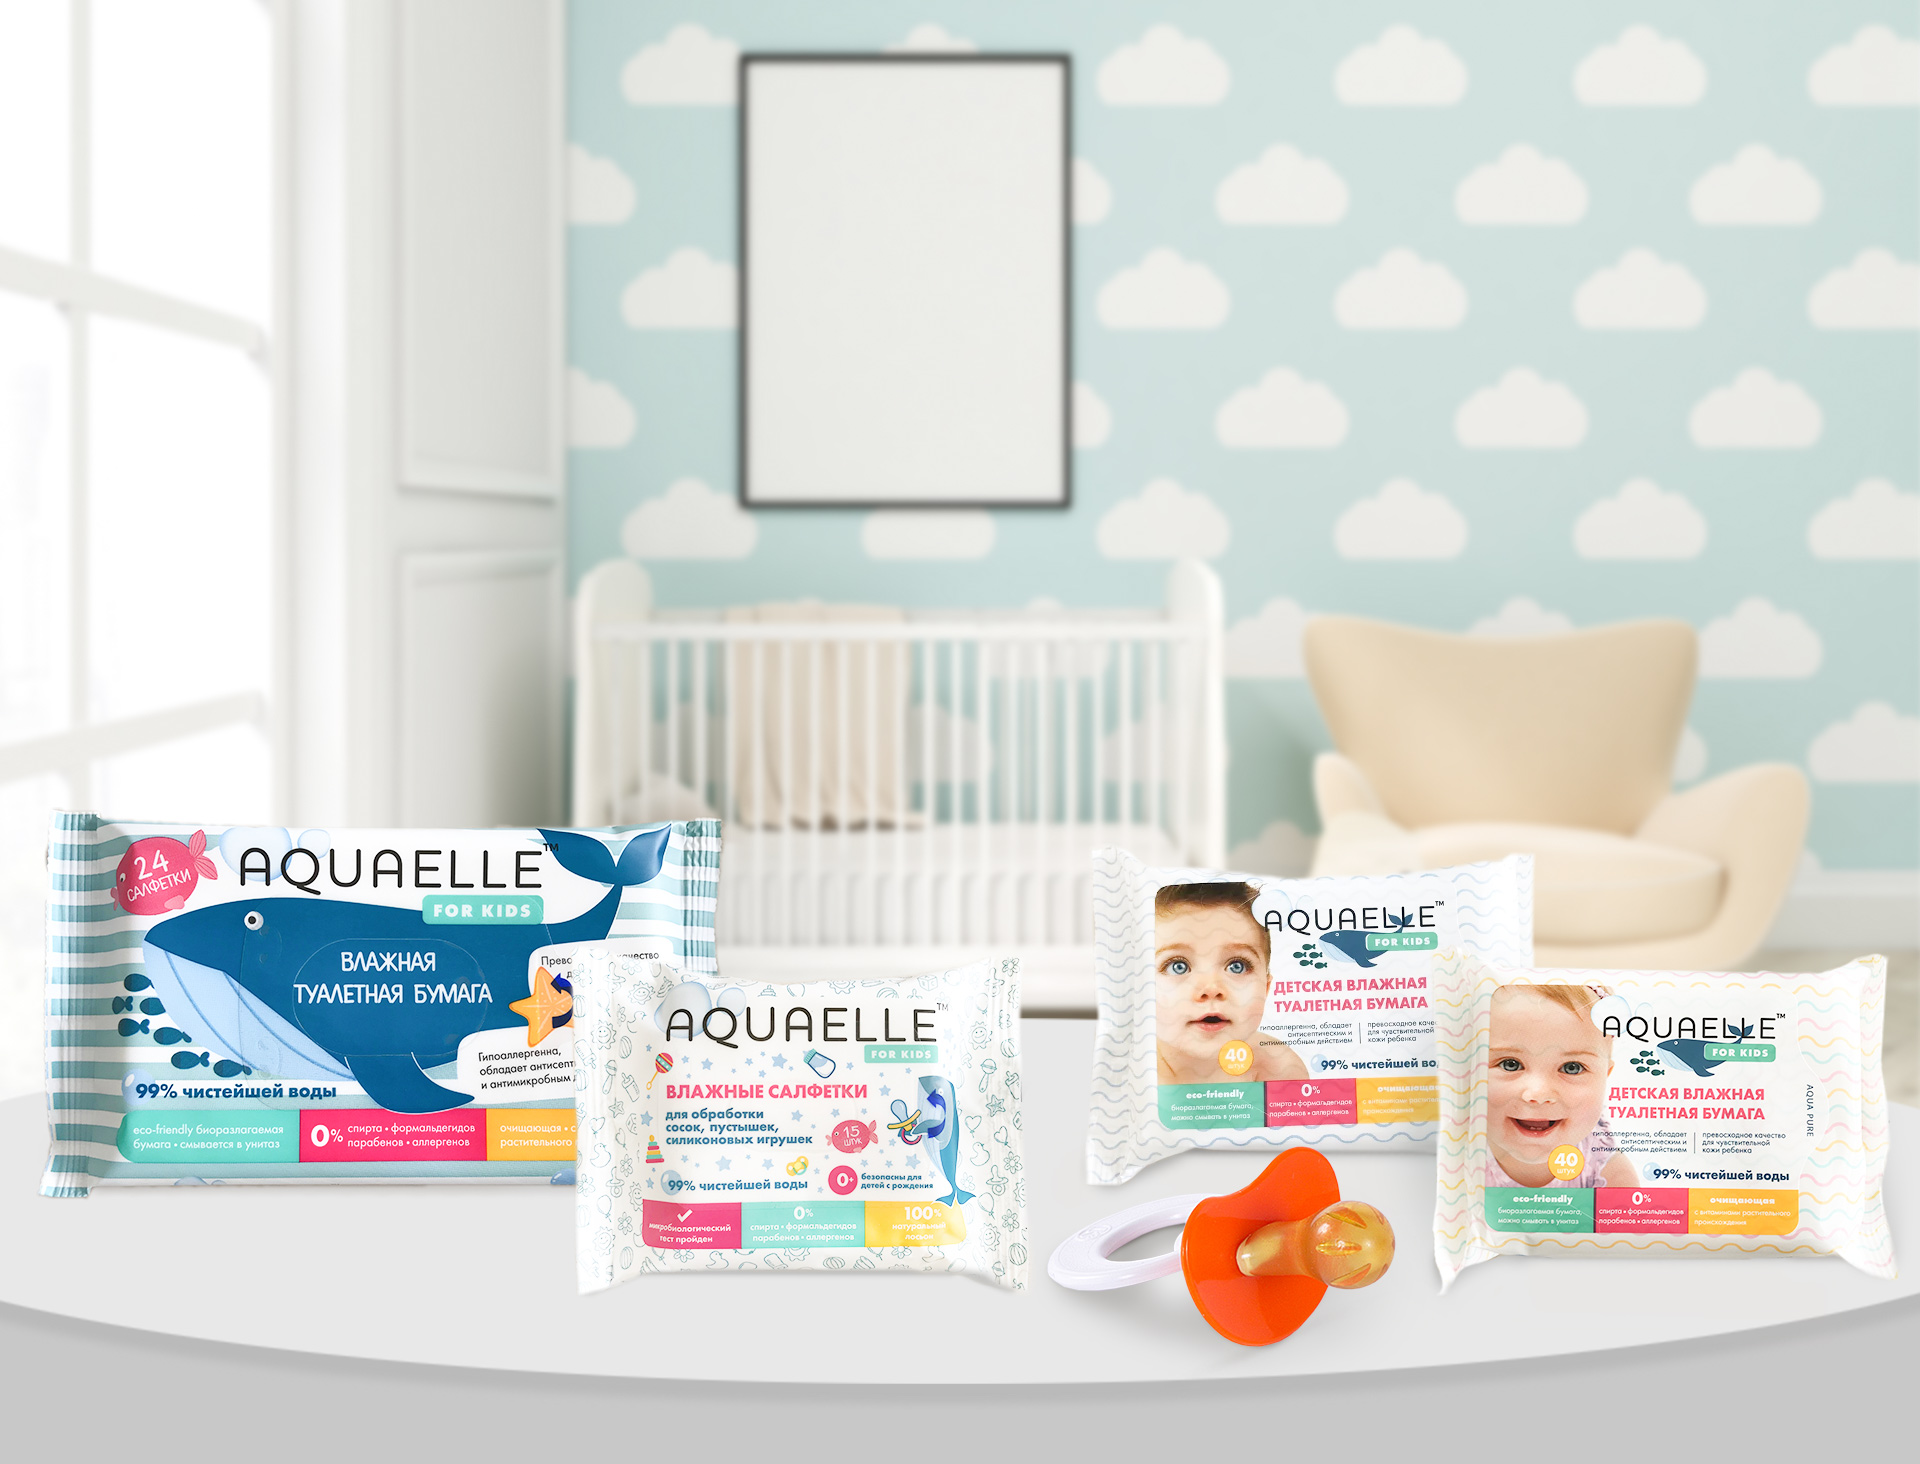 Aquaelle for kids - what modern parents want!